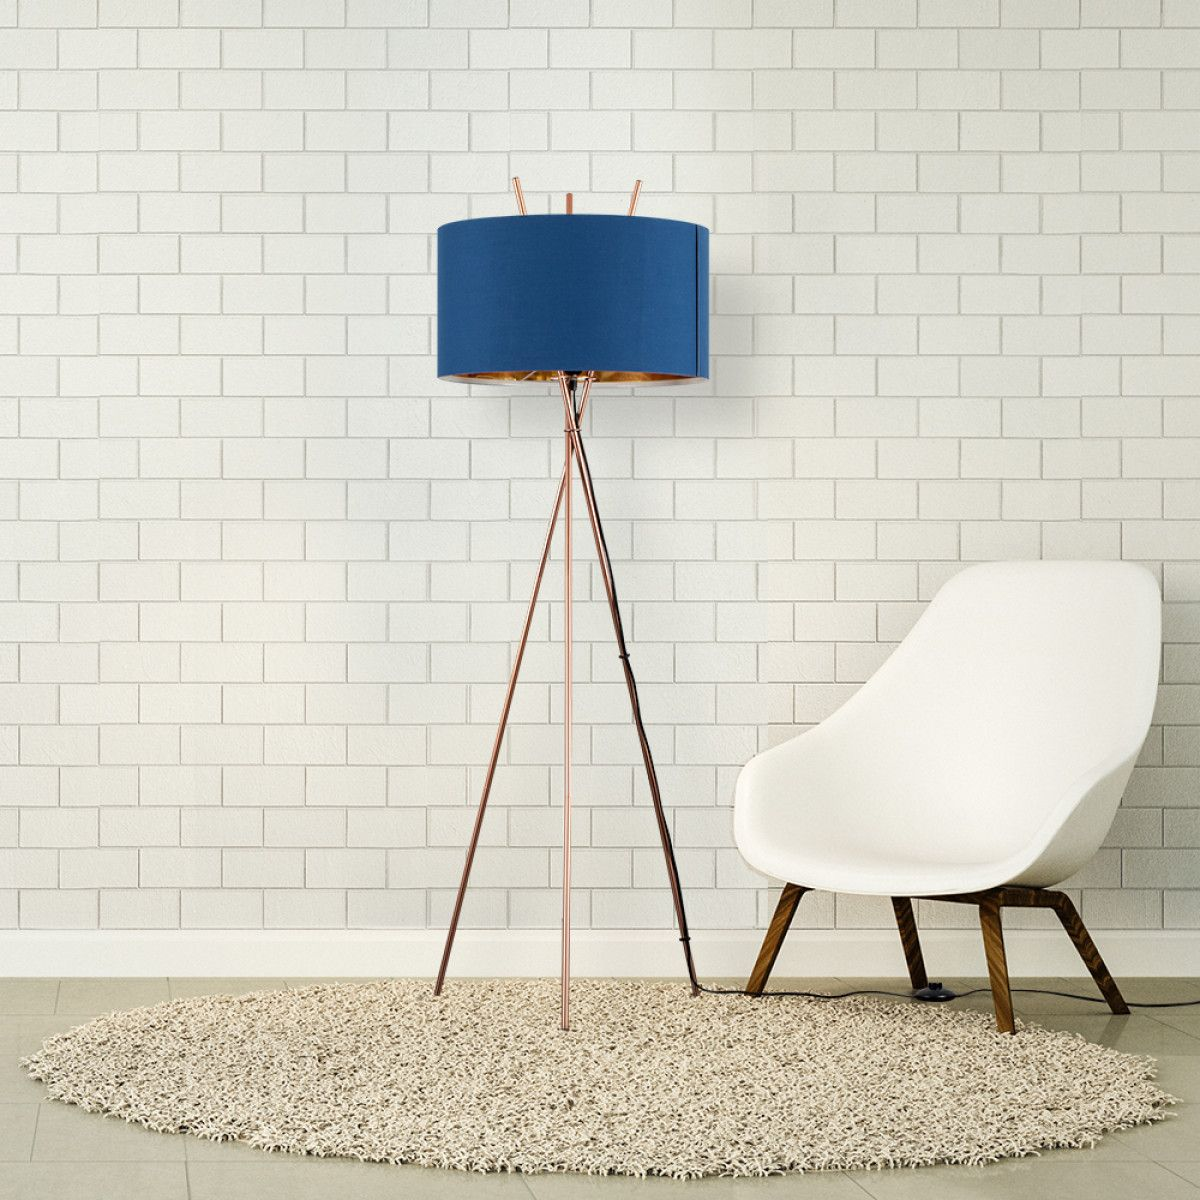 Crawford Tripod Floor Lamp Copper With Navy Blue Shade Copper